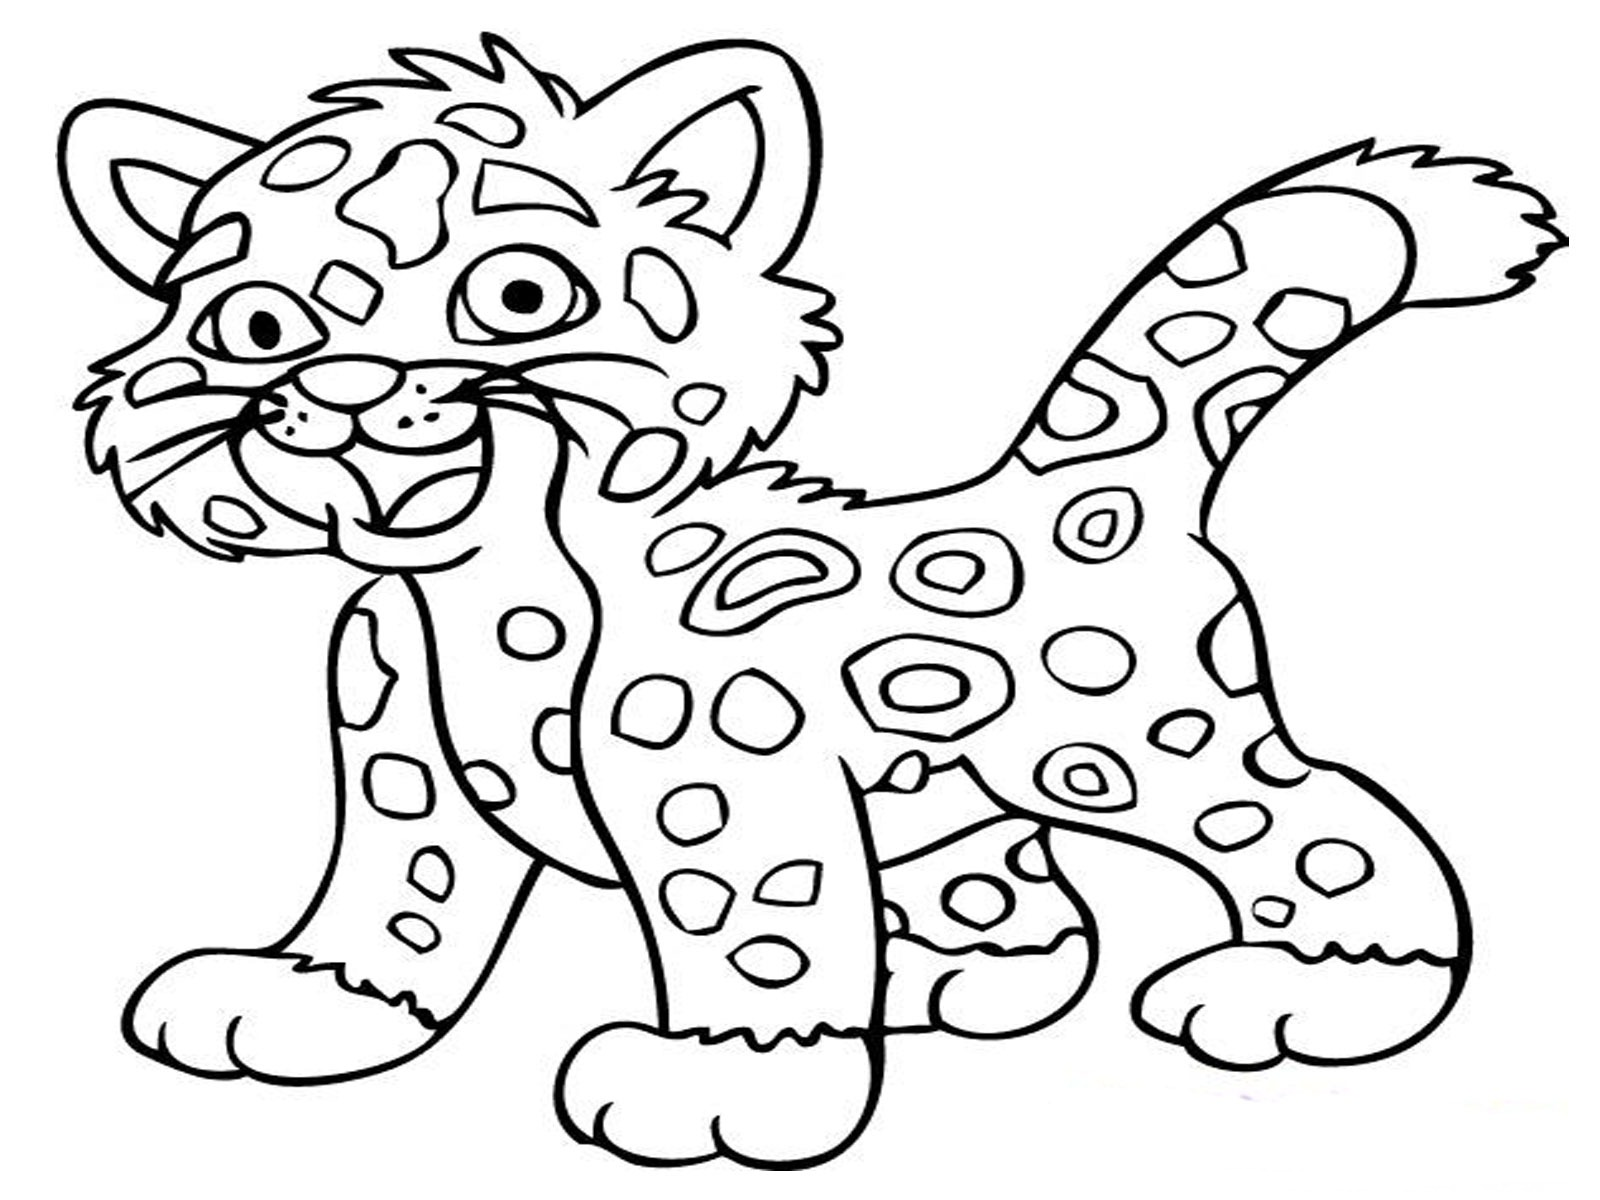 Animal Coloring Pages 9 Coloring Kids Coloring Pages To Print Out For Free